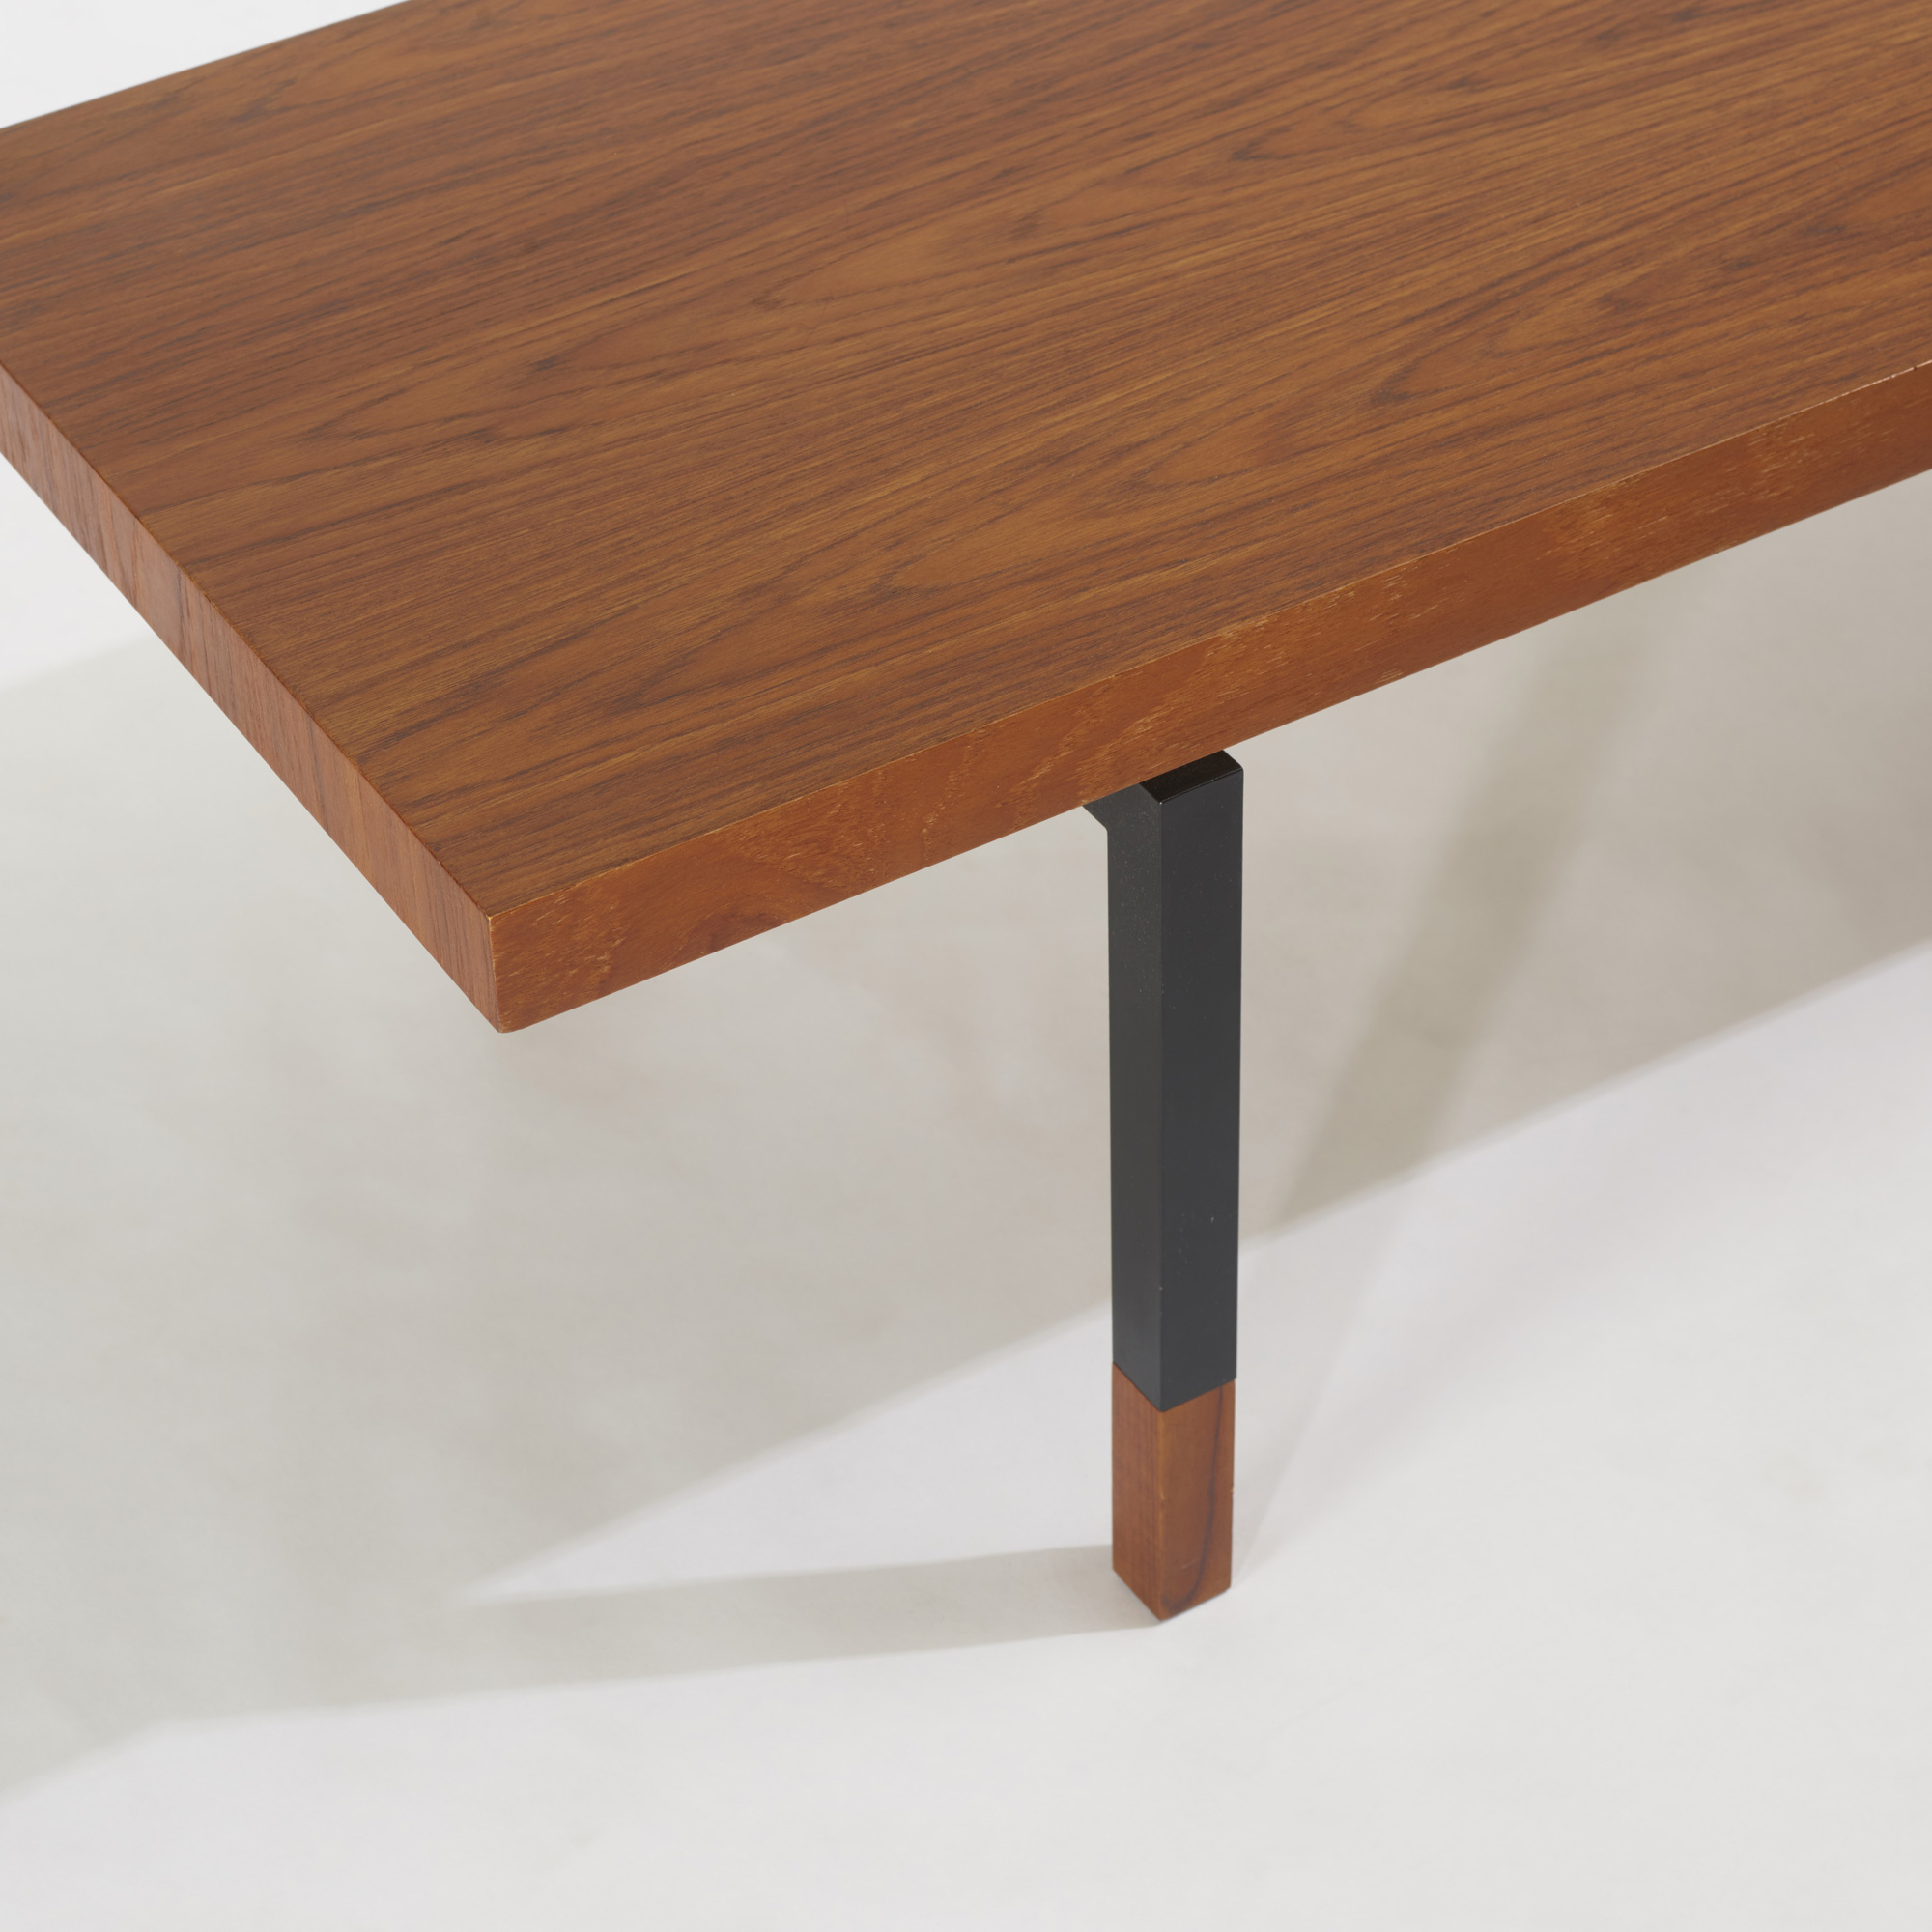 148: Johannes Aasbjerg / coffee table (2 of 3)